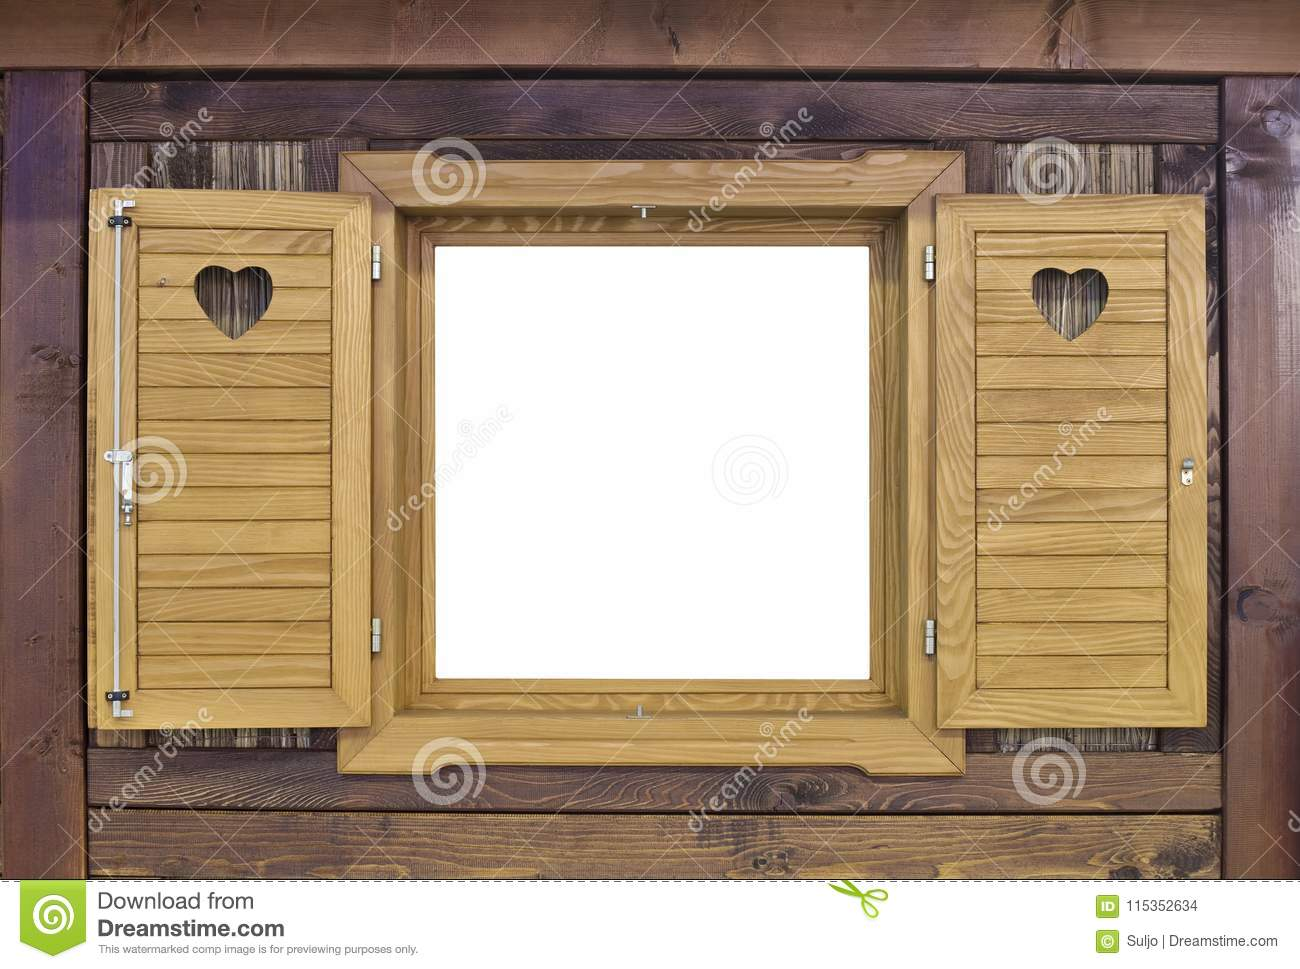 Download Wooden Challet Window Stock Photo Image Of Open Rustic